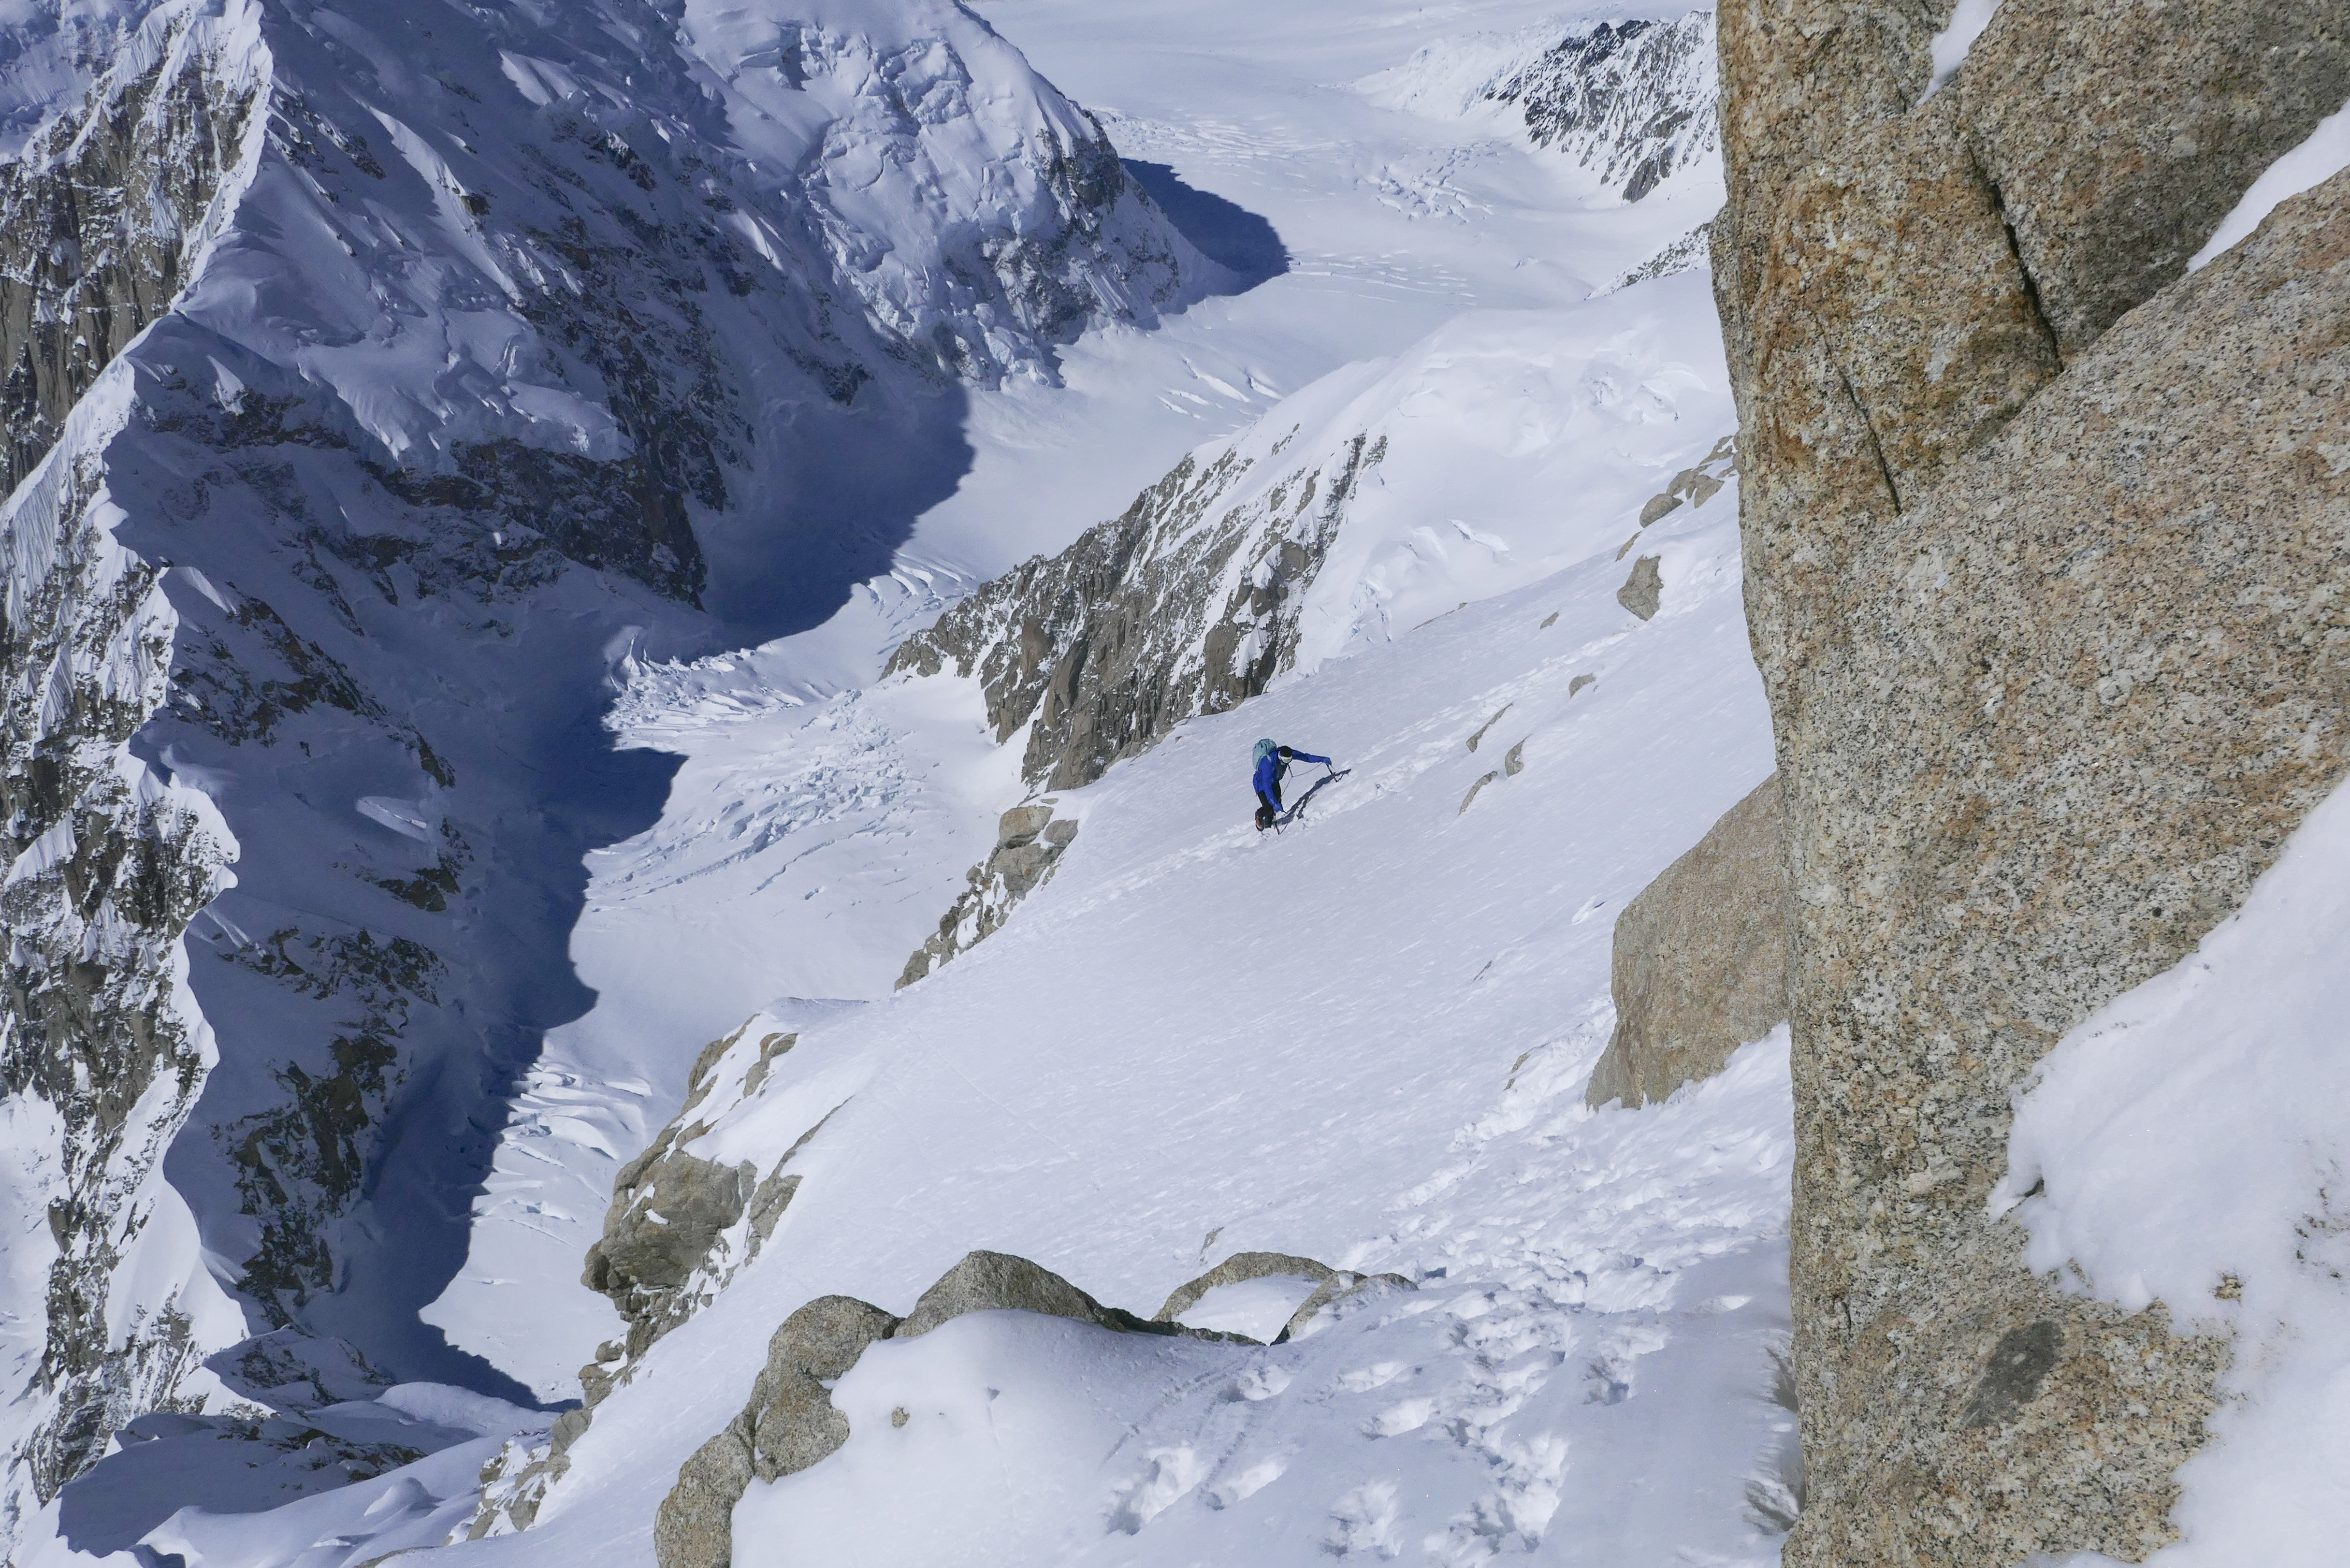 Colin Haley moving up the Cassin Ridge during his speed solo.